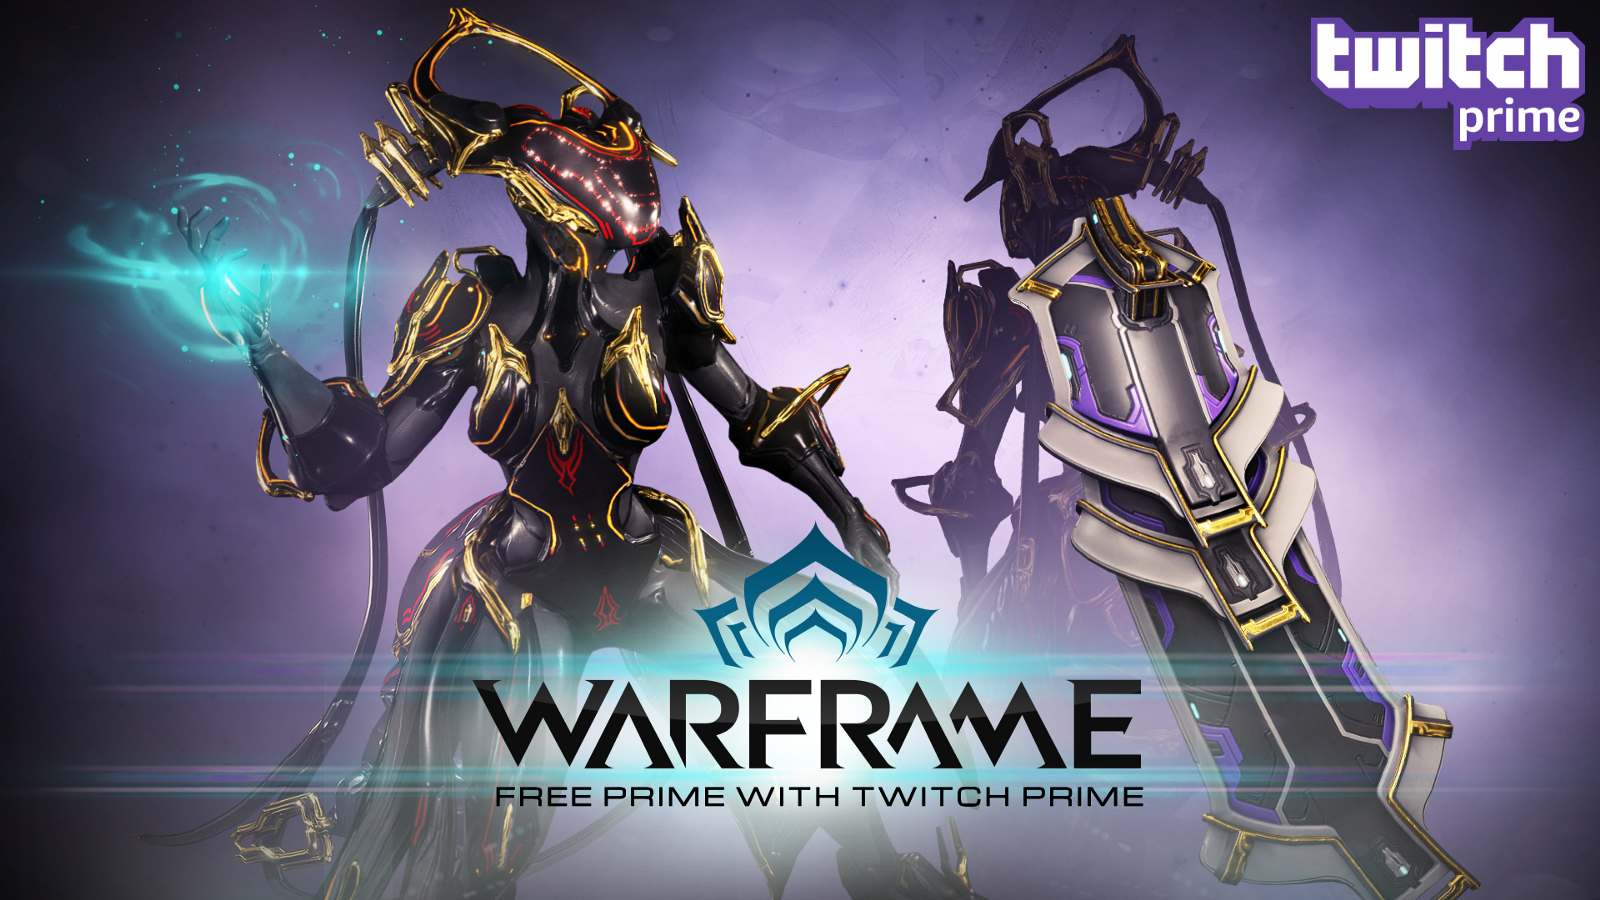 Twitch Prime Account Warframe / Apex Legends / Free Sub